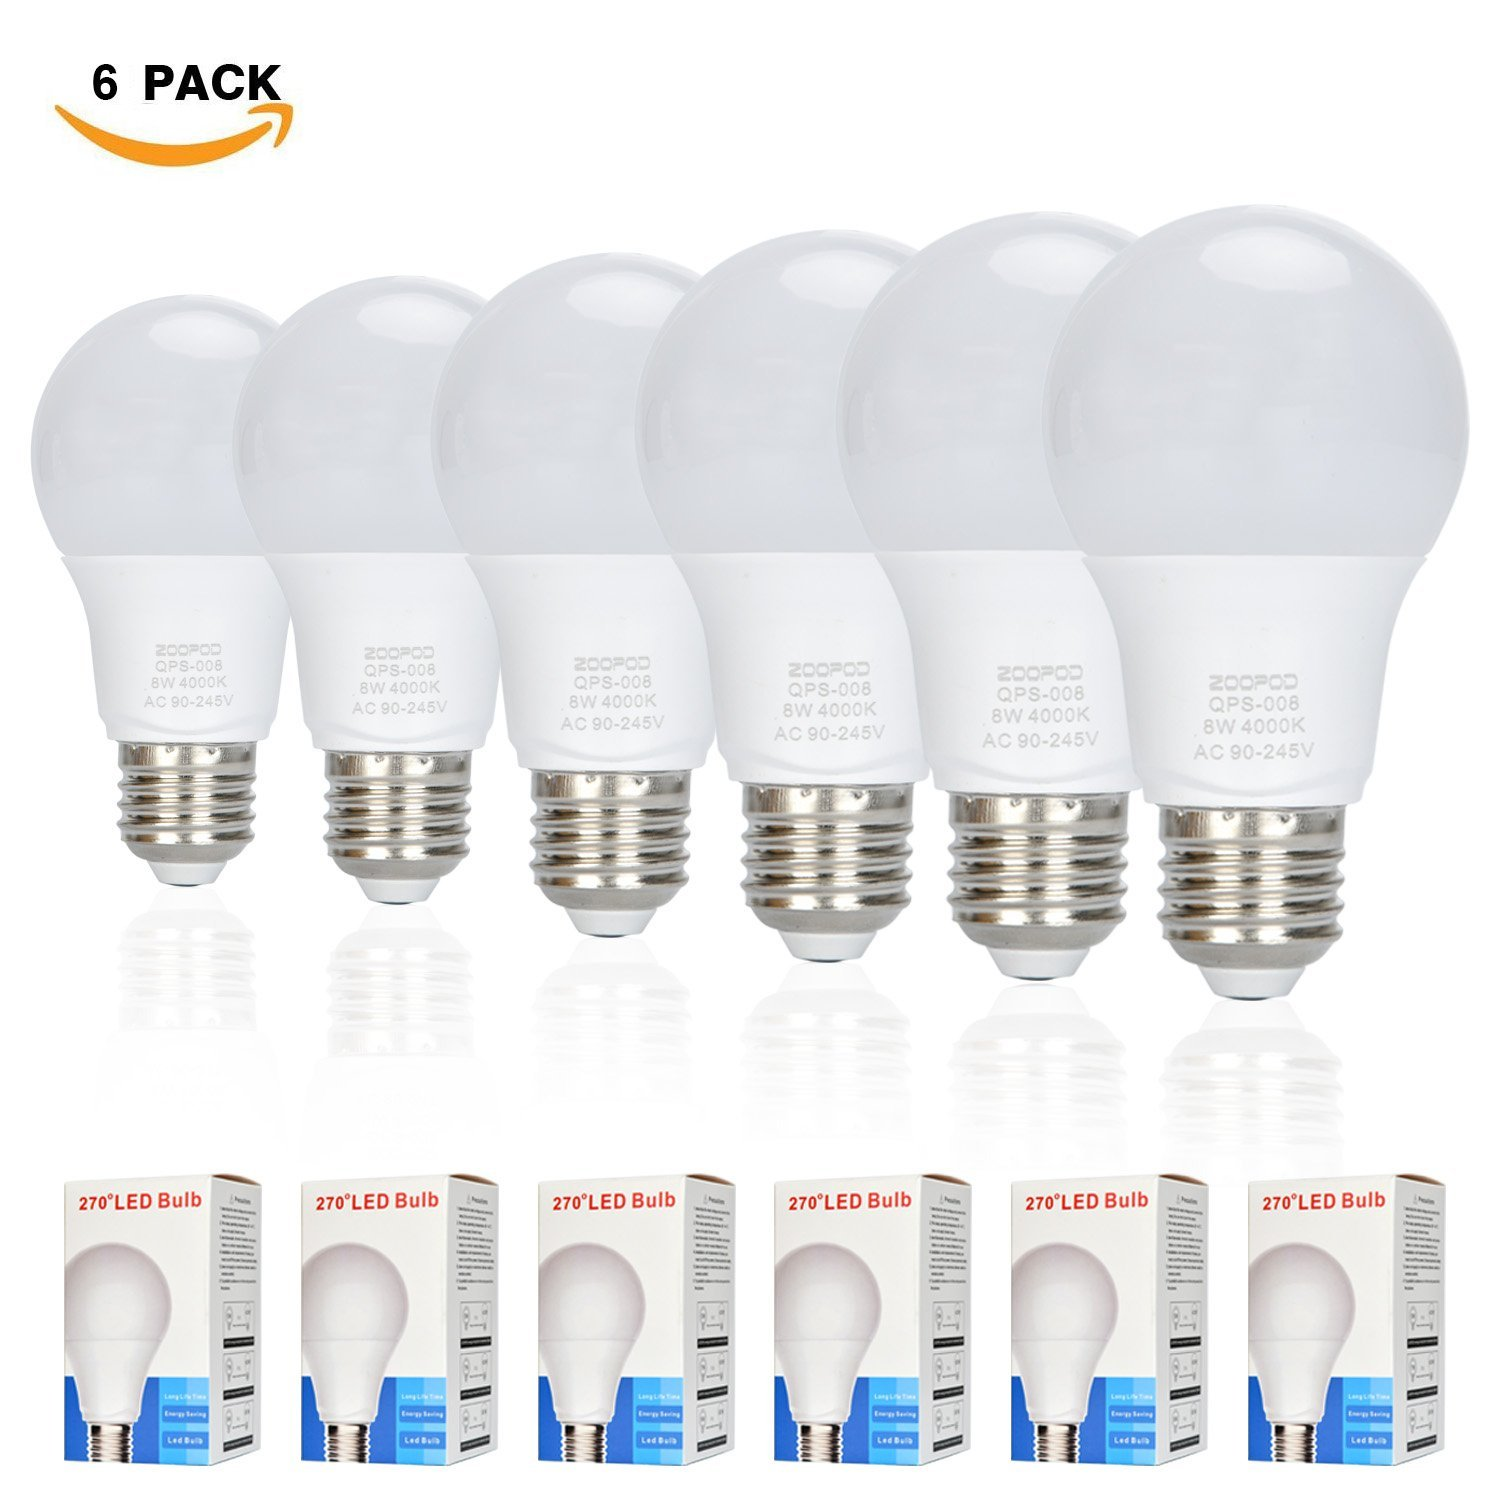 Canya A60 Led Bulb 60 Watt Equivalent 6w E26 Based Led Filament Vintage Dimmable Bulb With